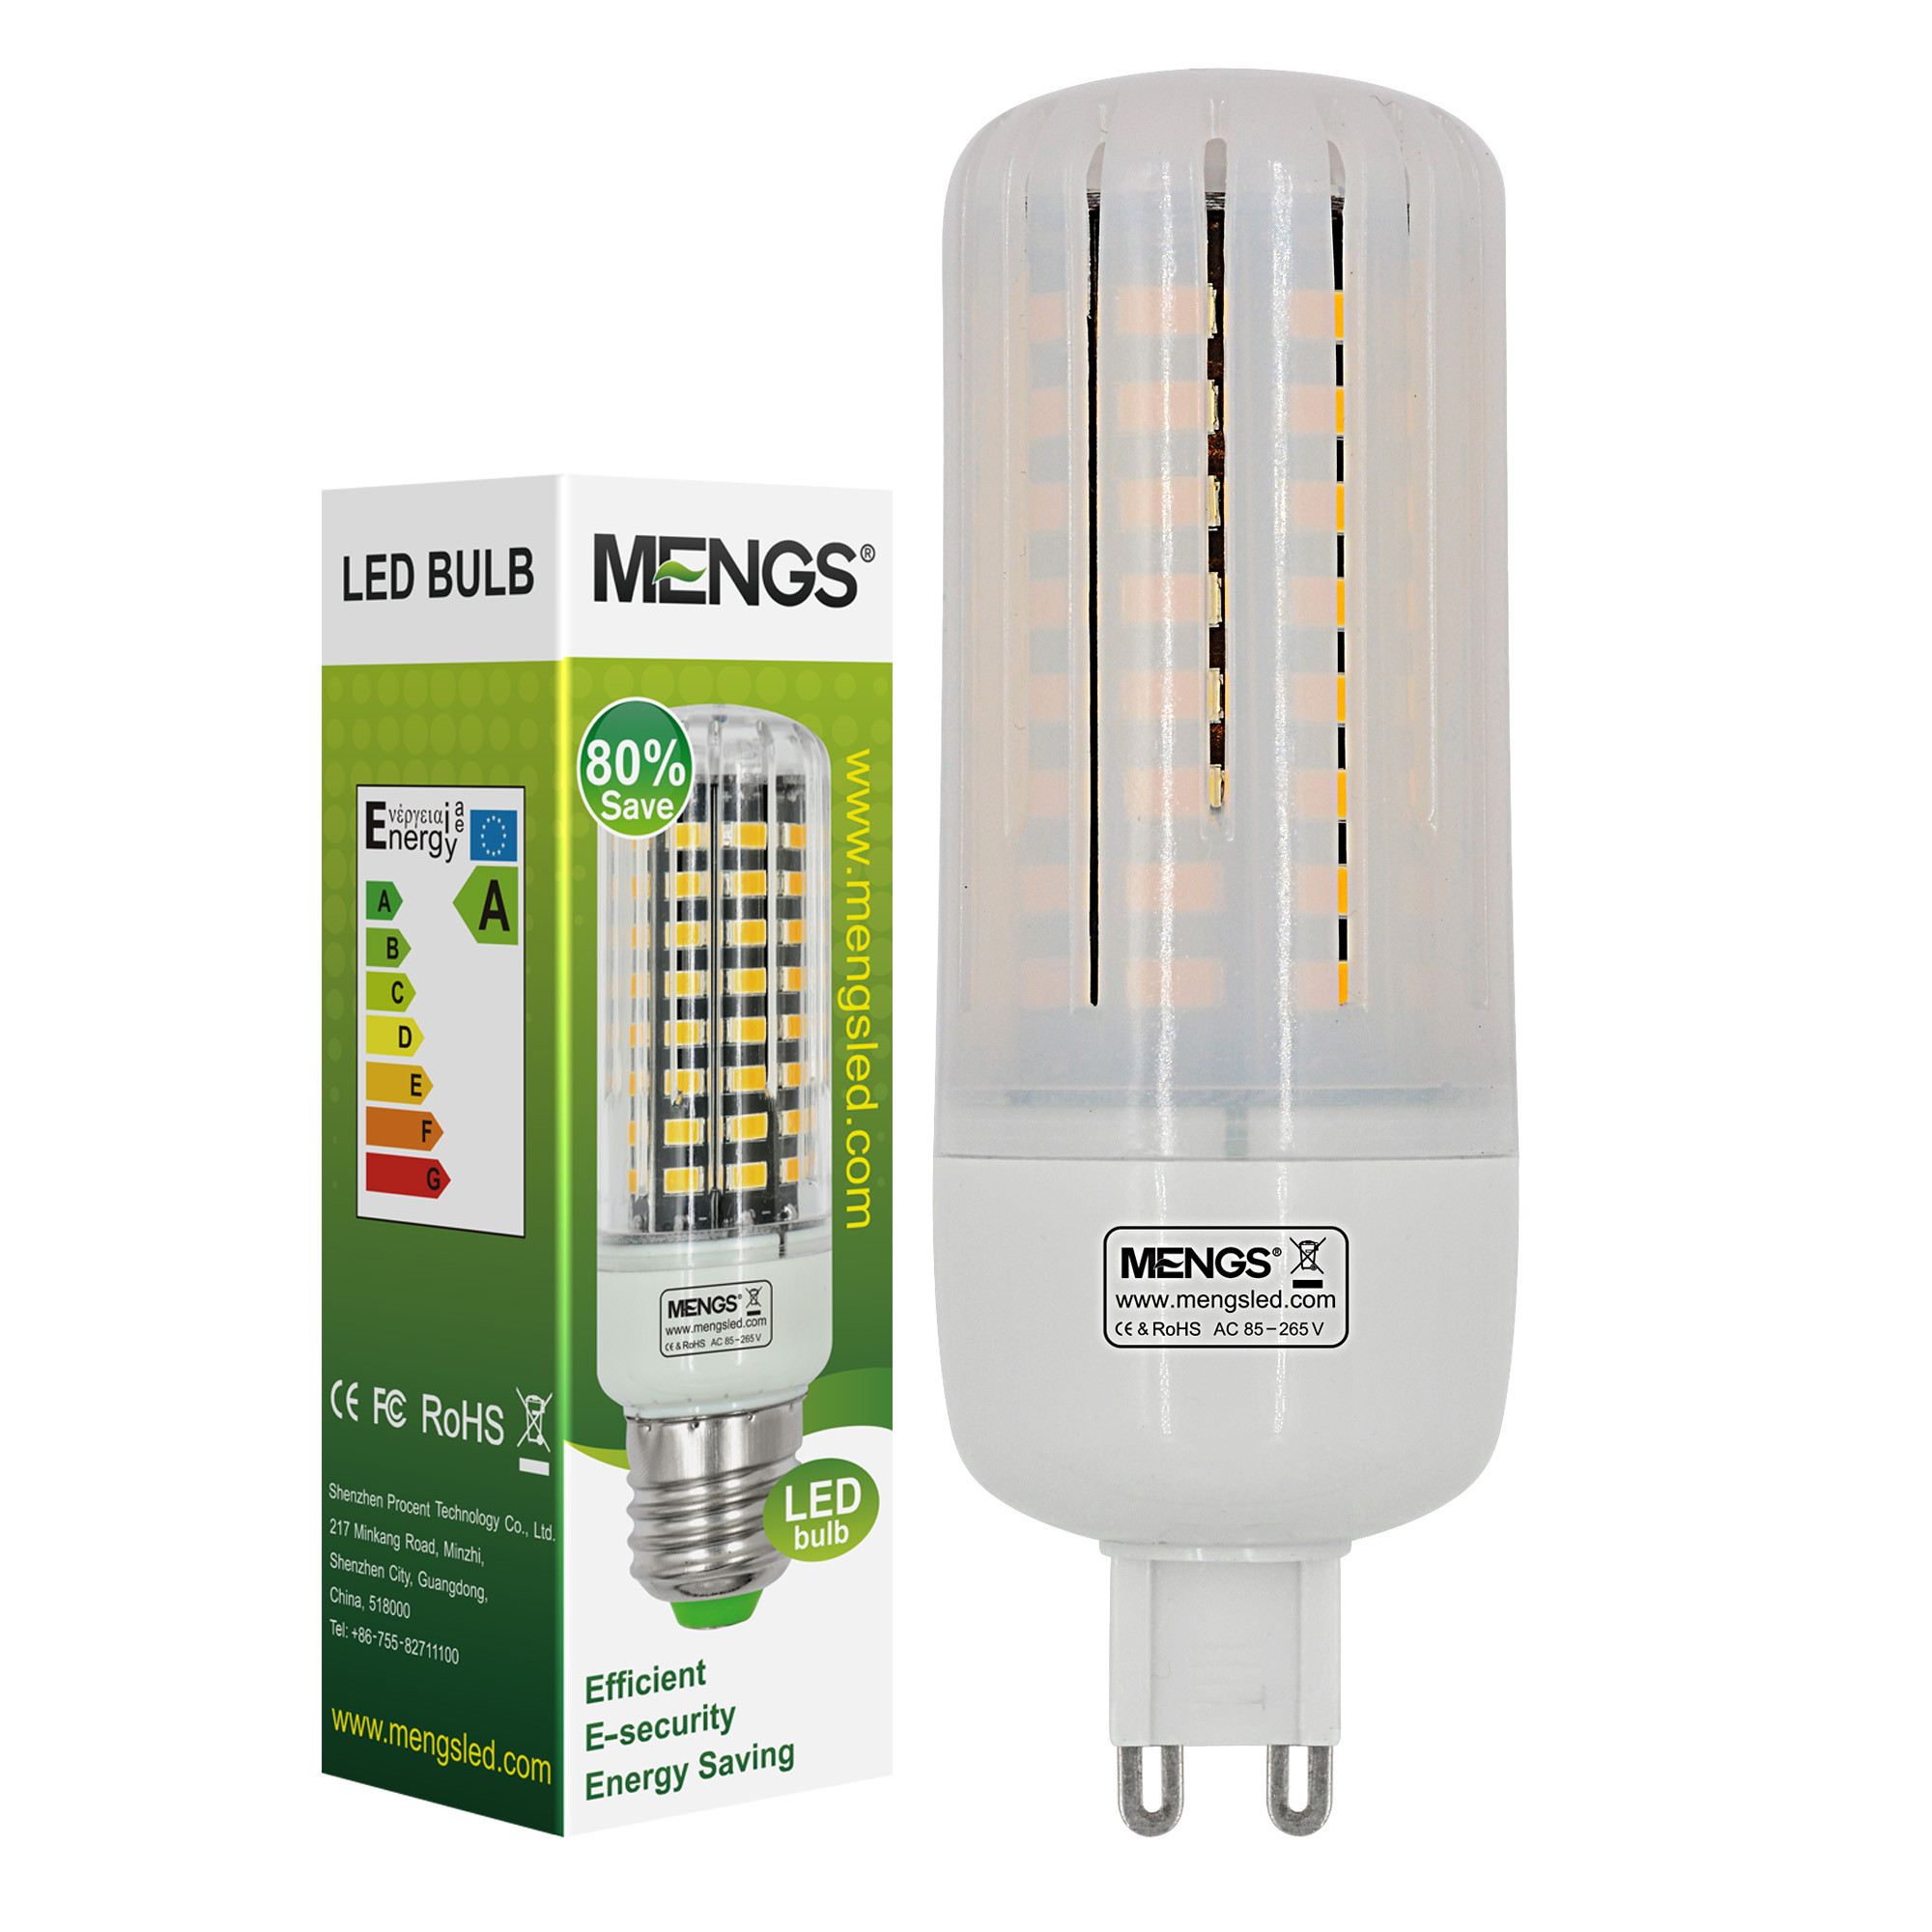 MENGS® Anti-Strobe G9 9W LED Corn Light 72x 5736 SMD LB LED Bulb Lamp In Warm White Energy-Saving Lamp